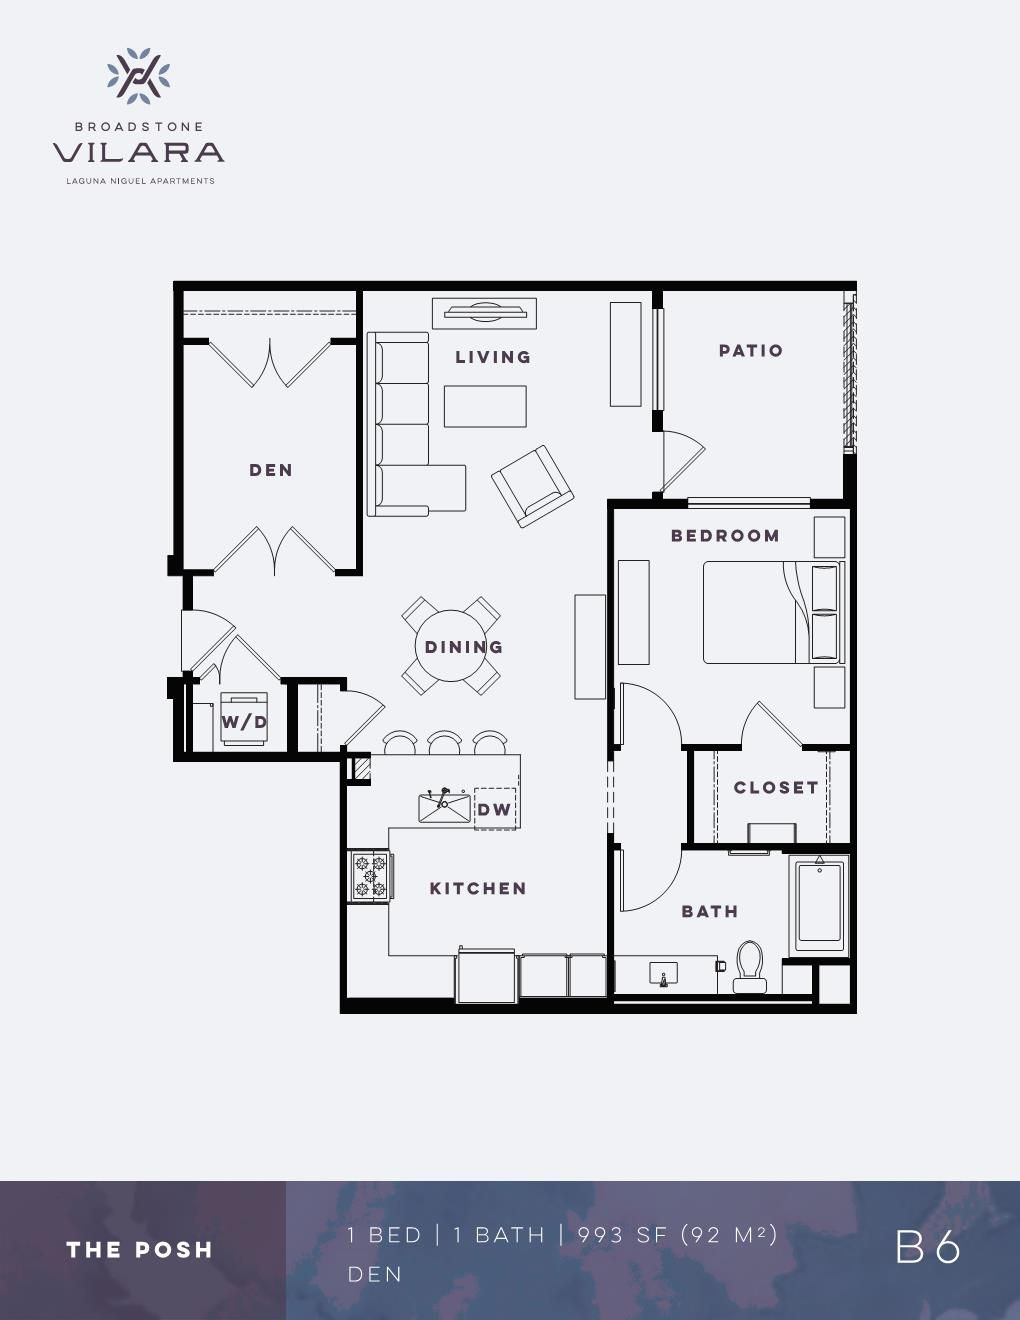 One Bedroom Den Apartment The Posh Broadstone Vilara In 2020 Floor Plans One Bedroom Apartment Floor Plans